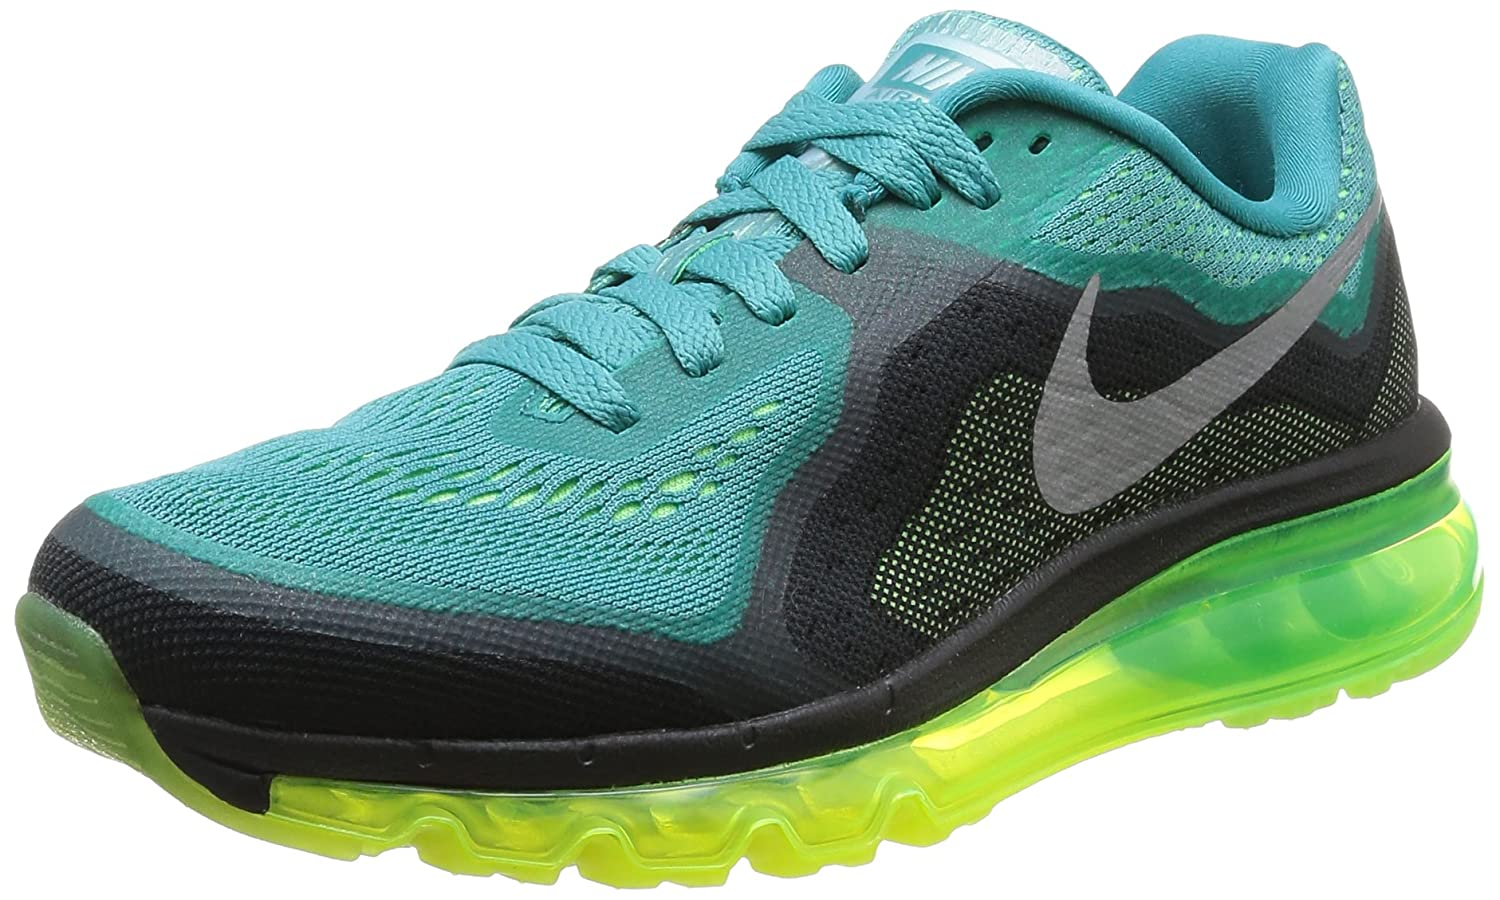 buy popular e89b7 3a0f9 Amazon.com   Nike Air Max 2014 Womens Running Shoes 621078-415   Road  Running